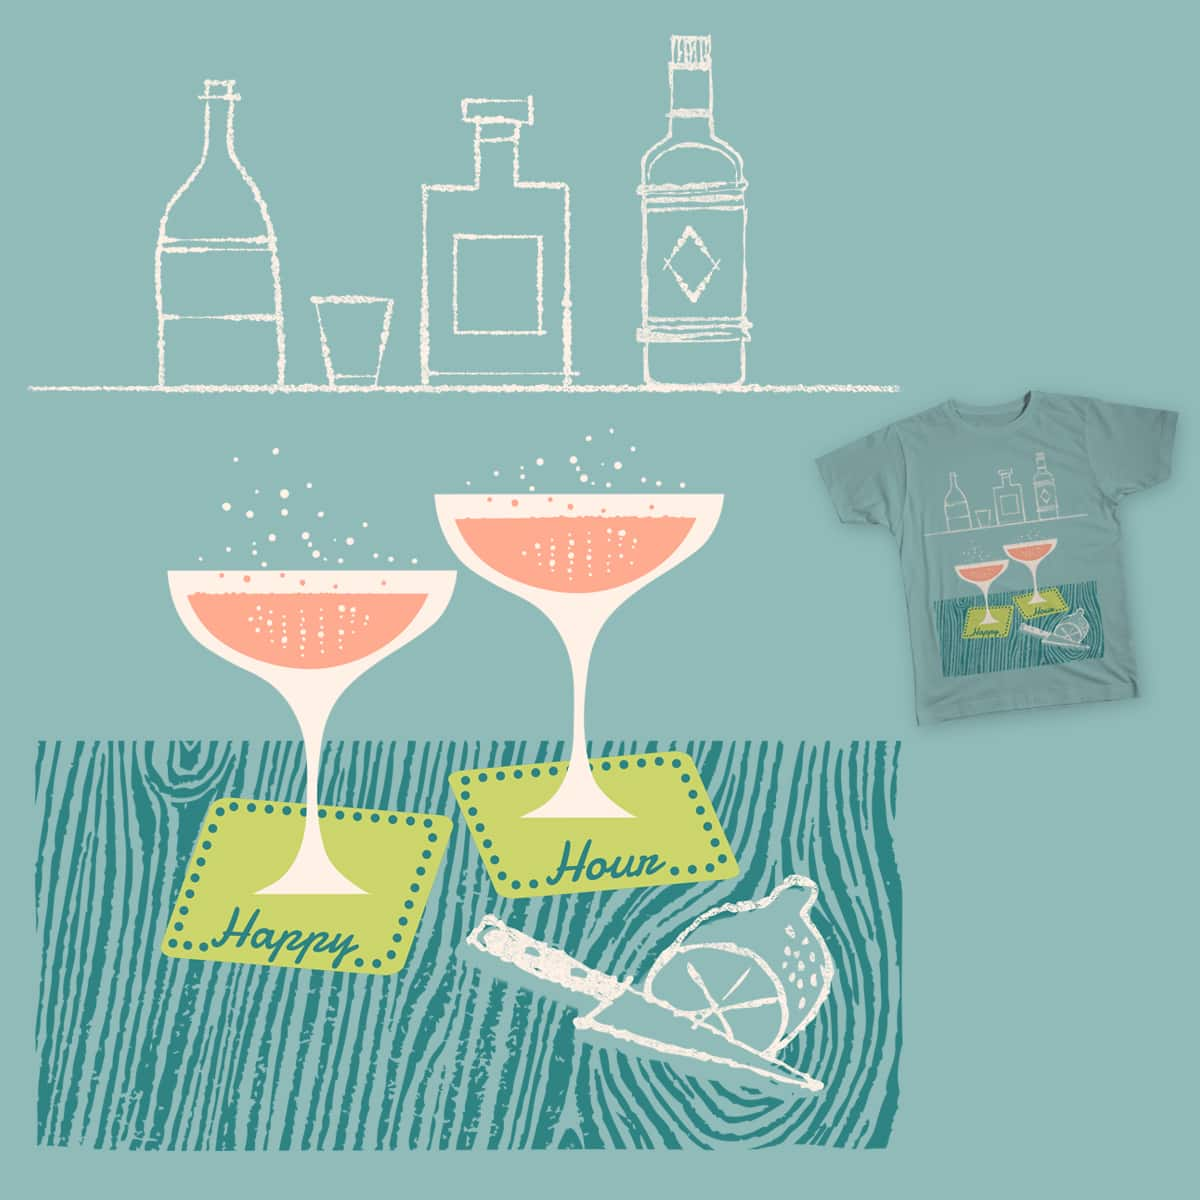 Happy Hour by expomonster on Threadless